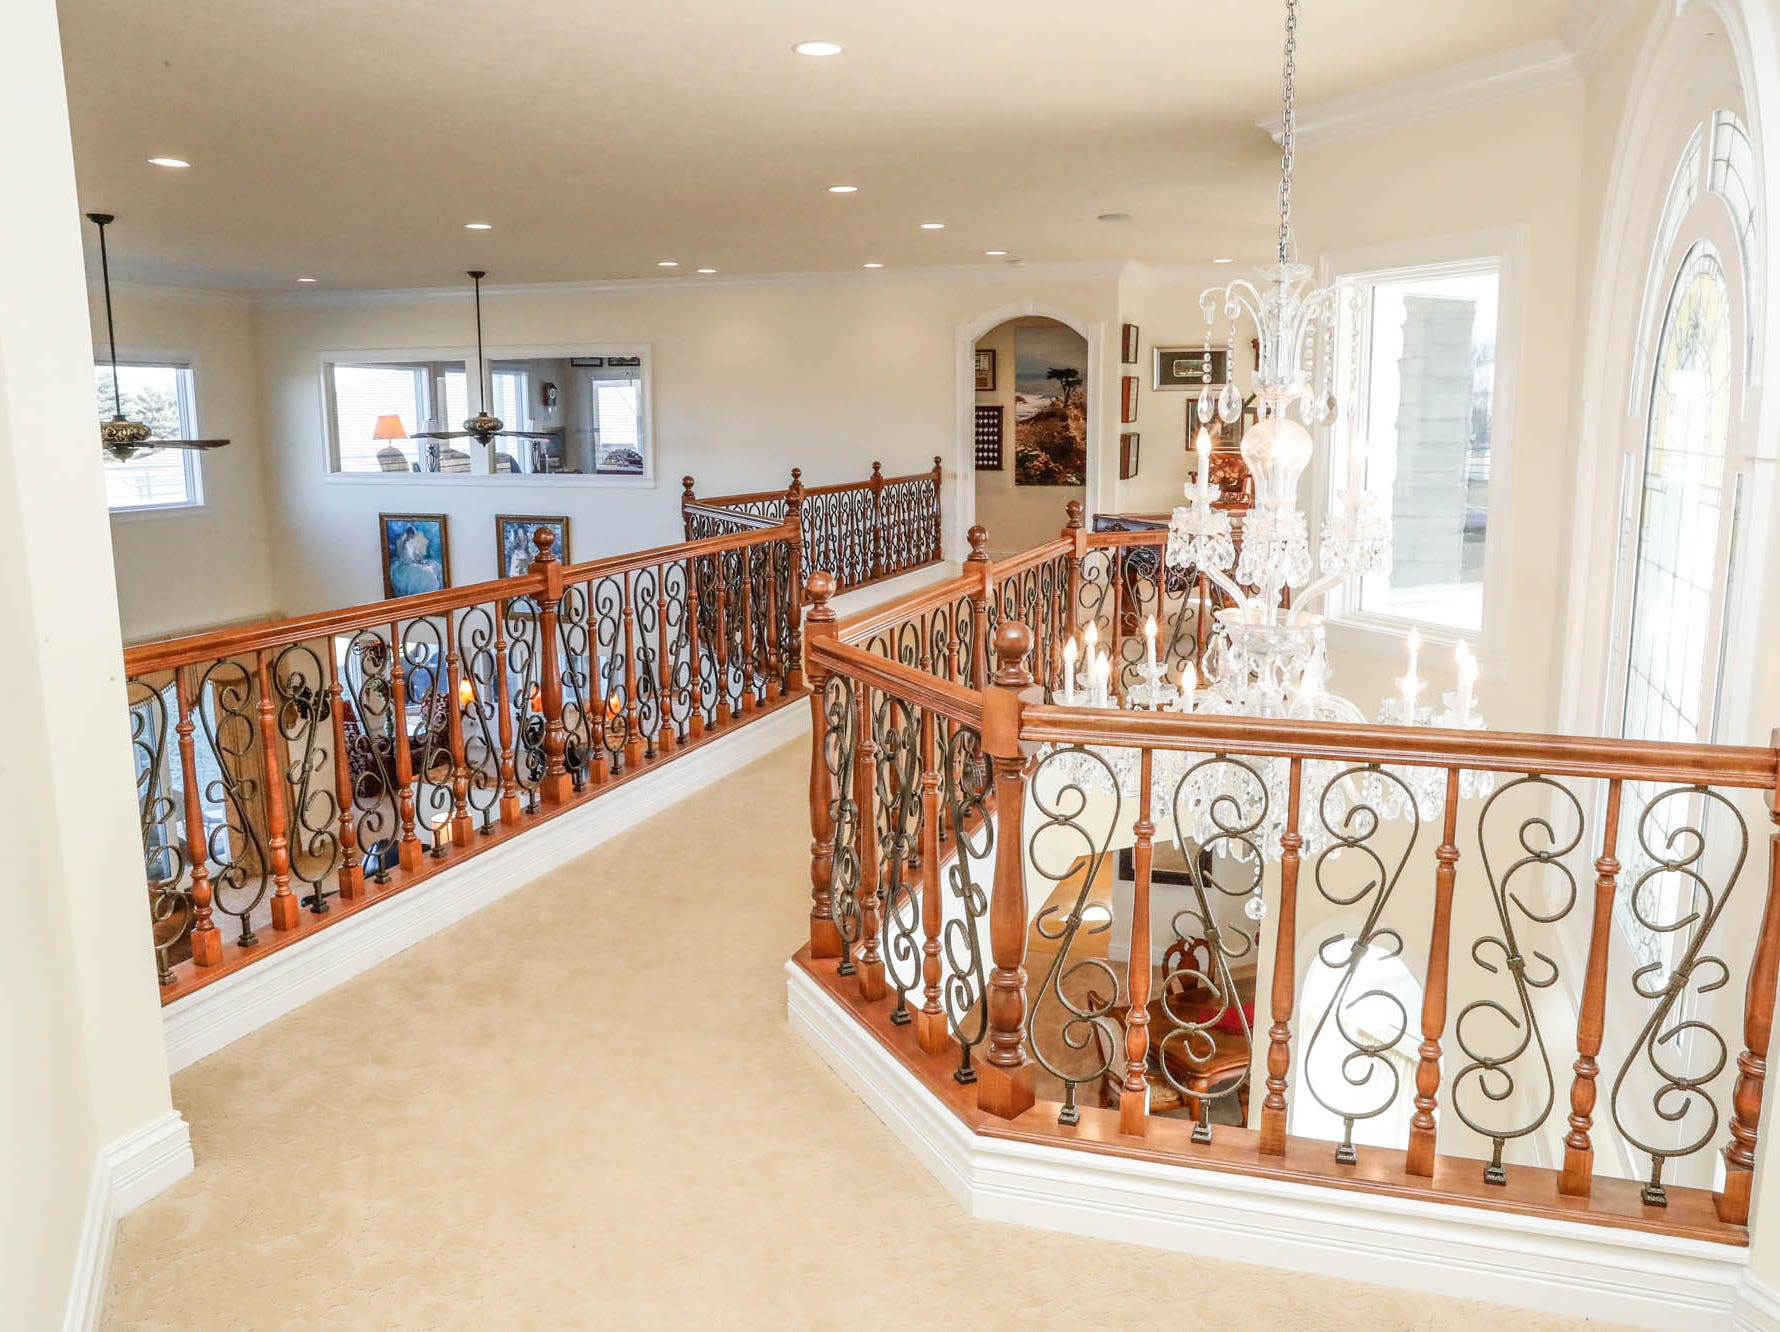 A walkway leads from a master suite to an upstairs billiards space at a Greenwood home up for sale at 1216 Stone Ridge Court, Greenwood, Ind. on Wednesday, Jan. 30, 2019. The home features 8,234 square feet, four bedrooms, two master suites, a 10 car garage, and an exercise room.